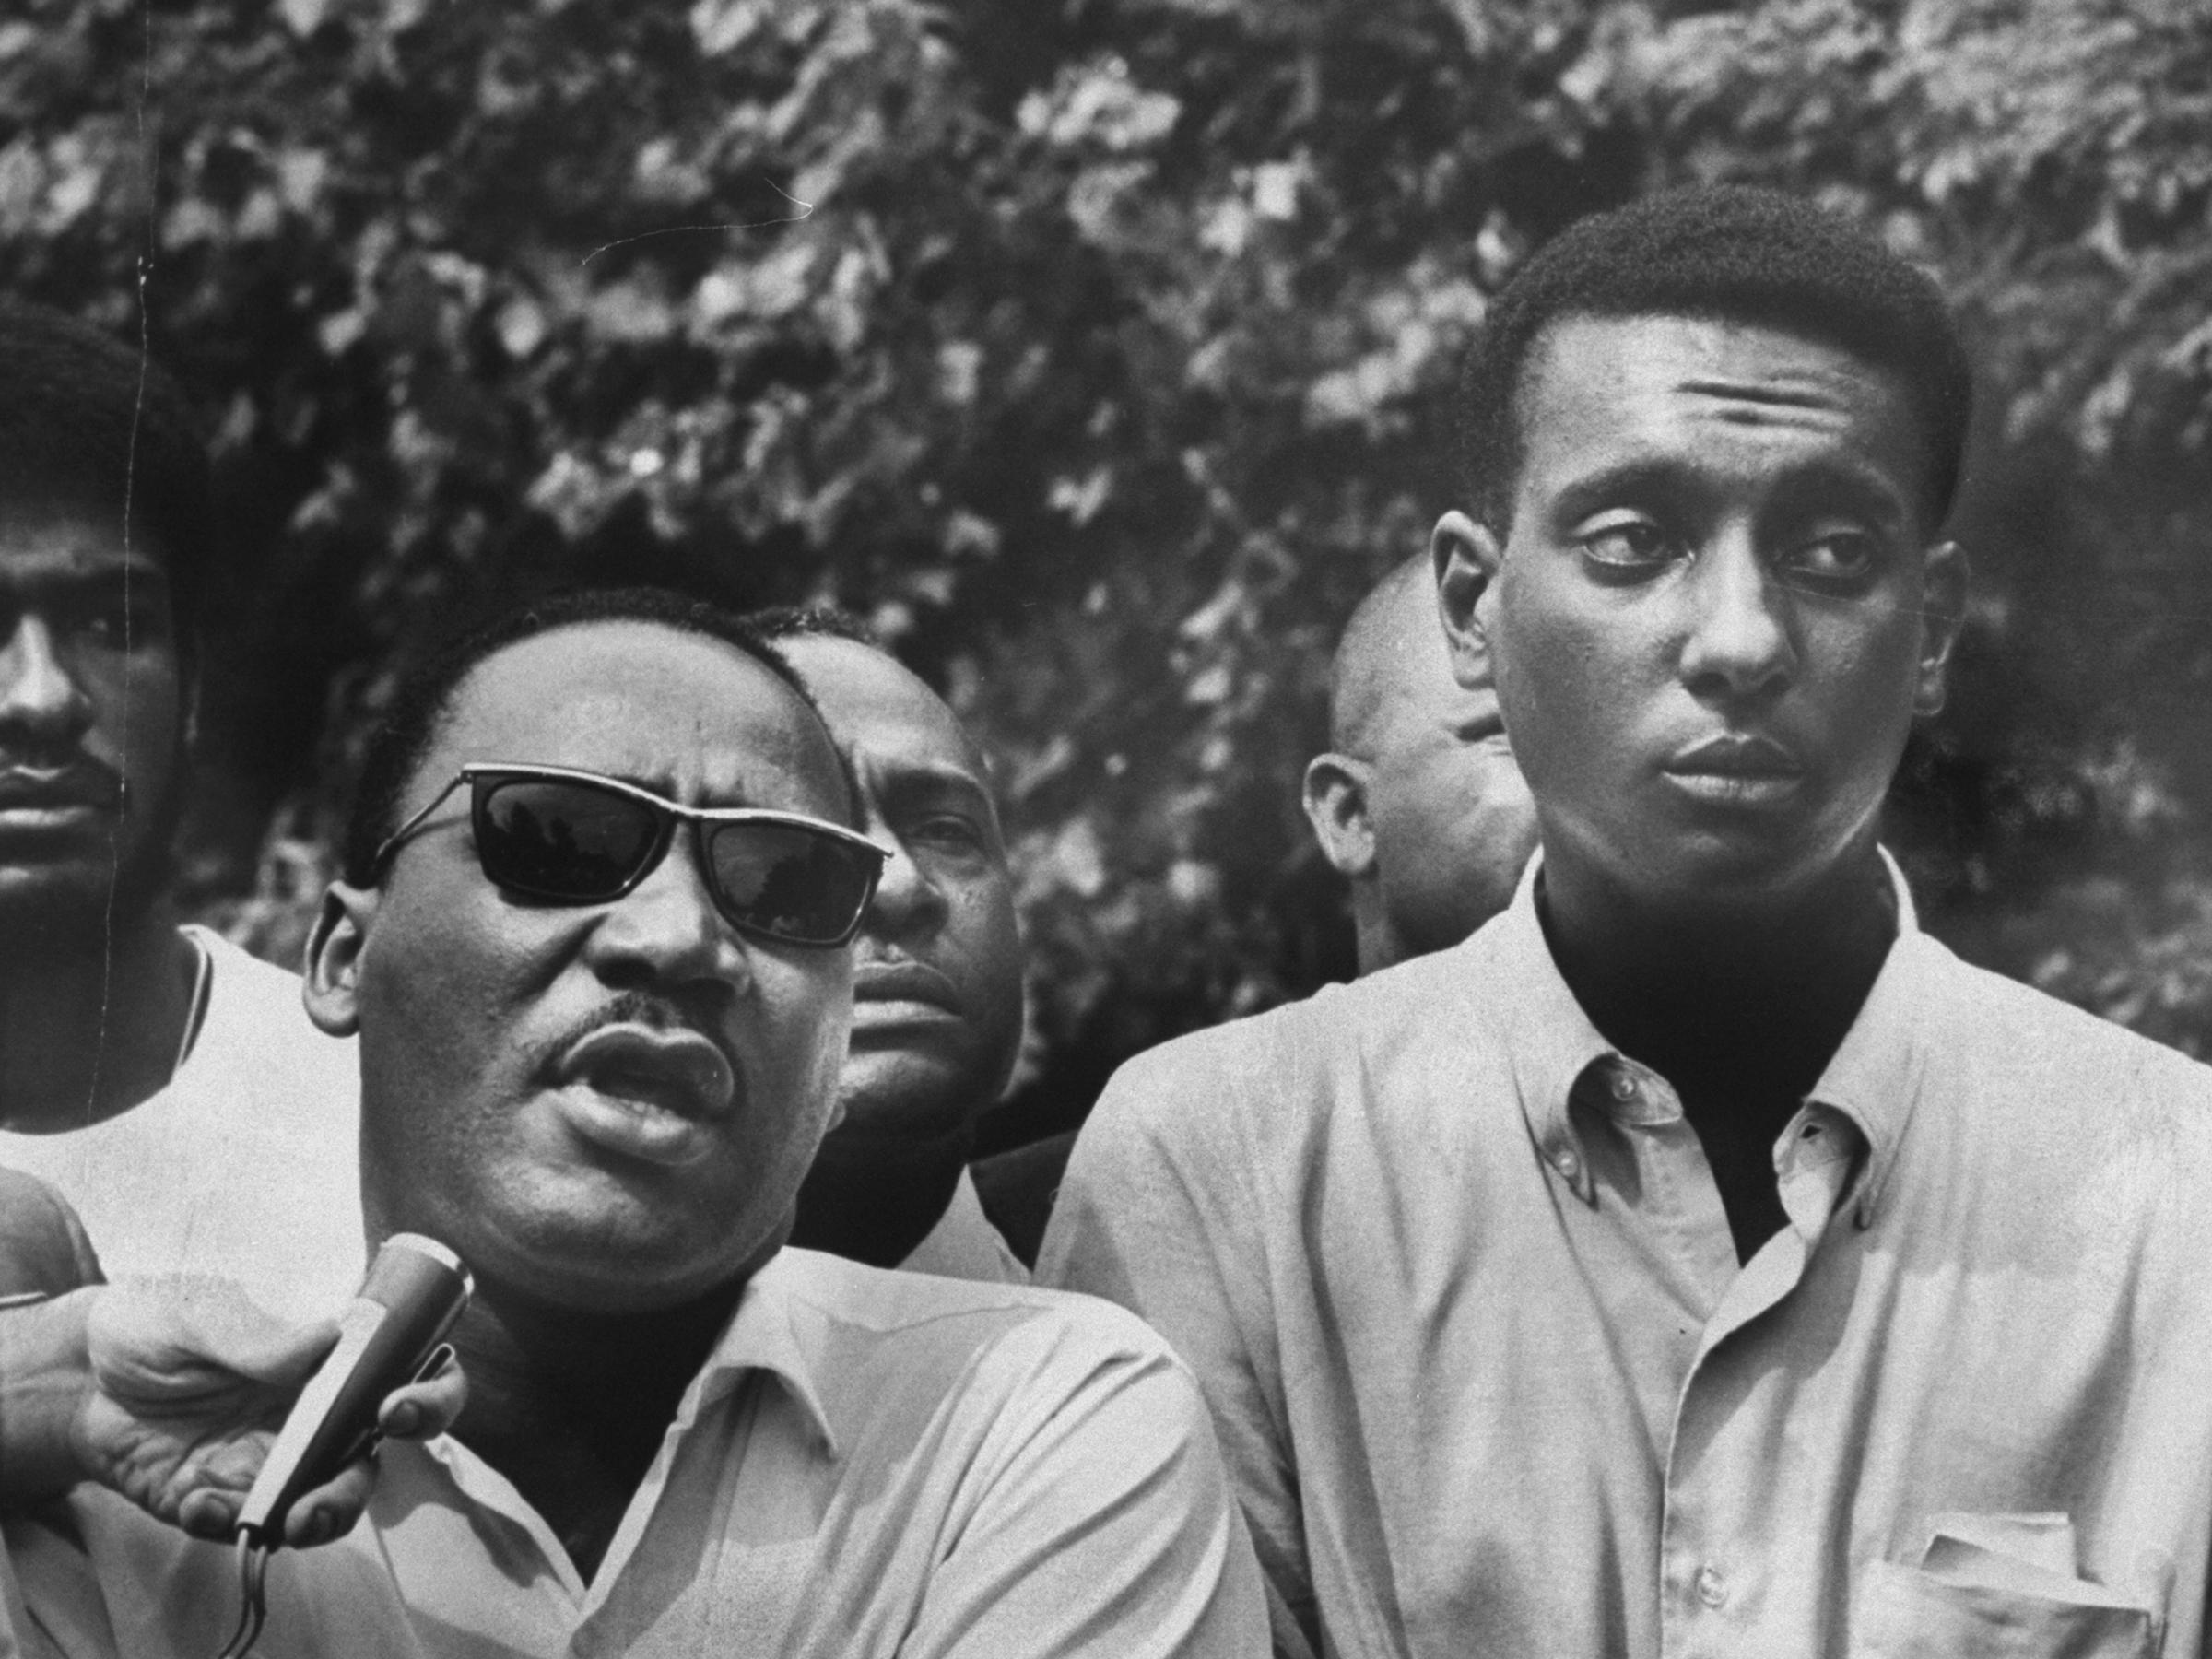 an analysis of stokely carmichael a view point Ideology and shame  in recounting his falling out with stokely carmichael  newton's politics of friendship derives from ideological analysis, and carmichael.